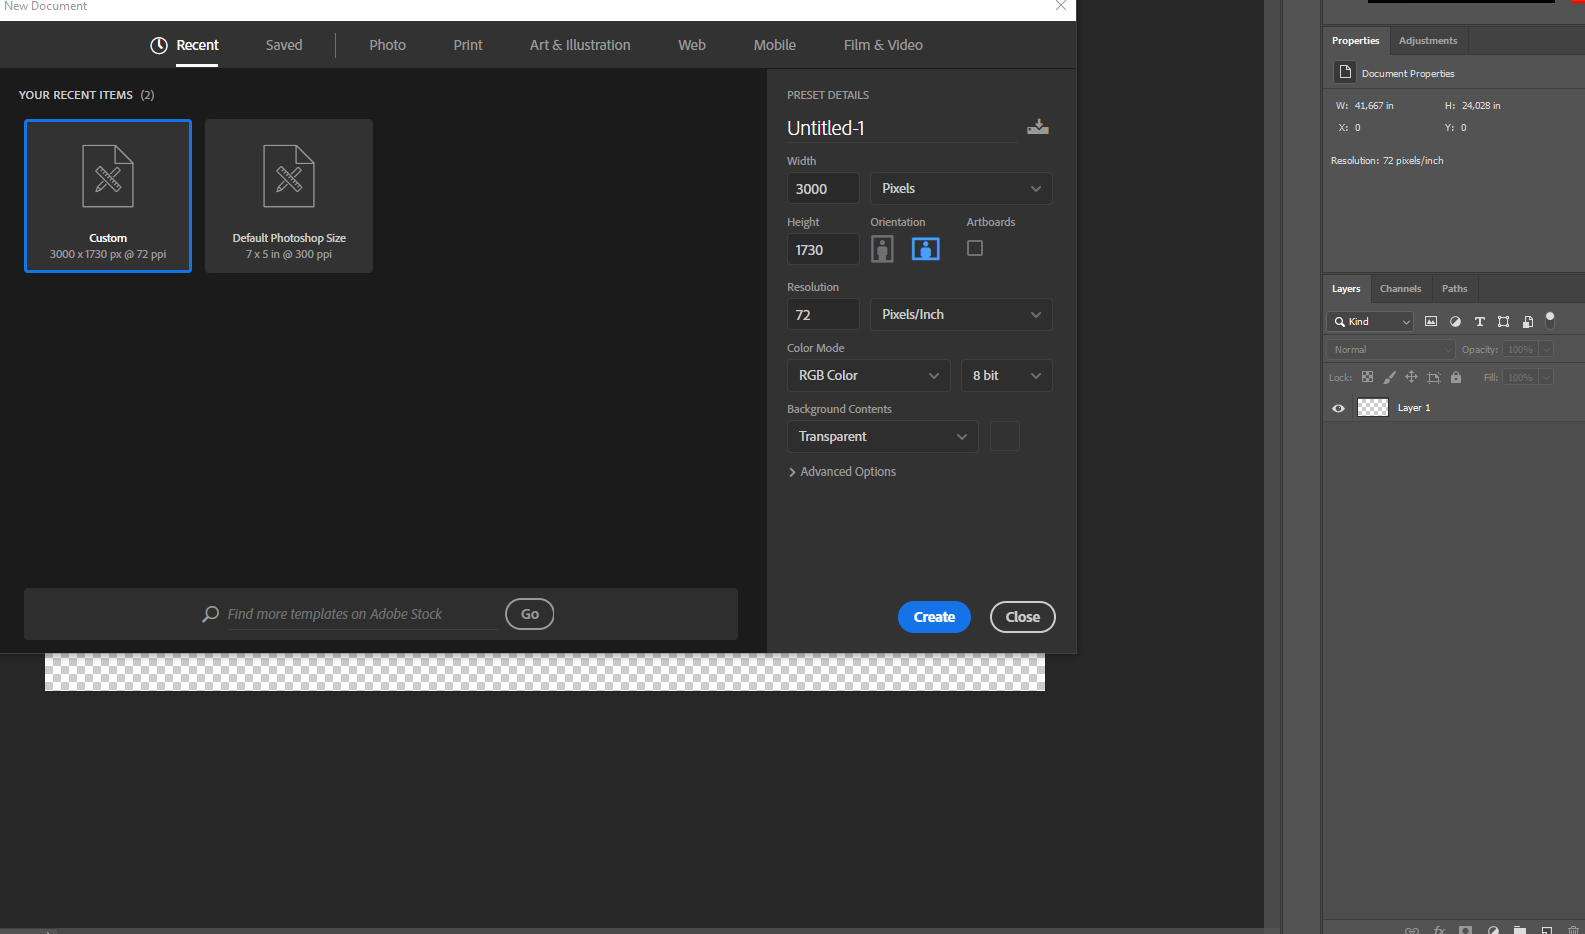 photoshop cc 2019 saving image without background as png.